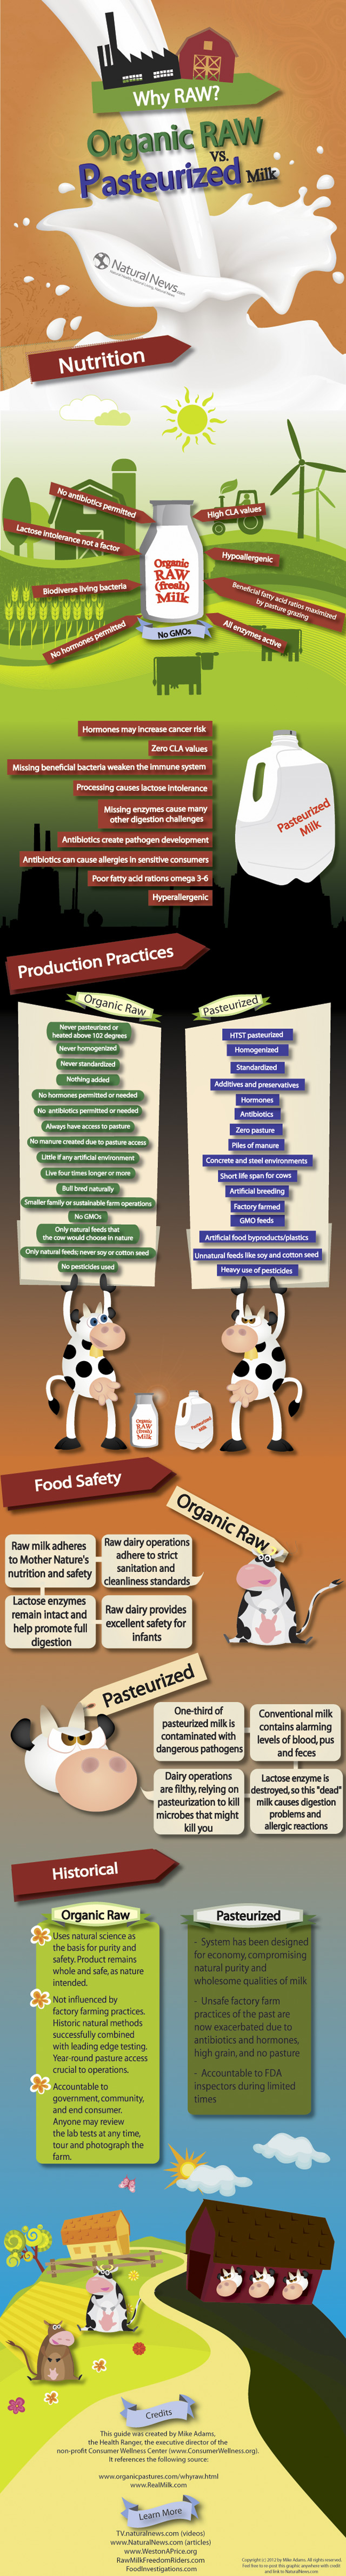 Why Raw Milk is Better Than Pasteurized Milk